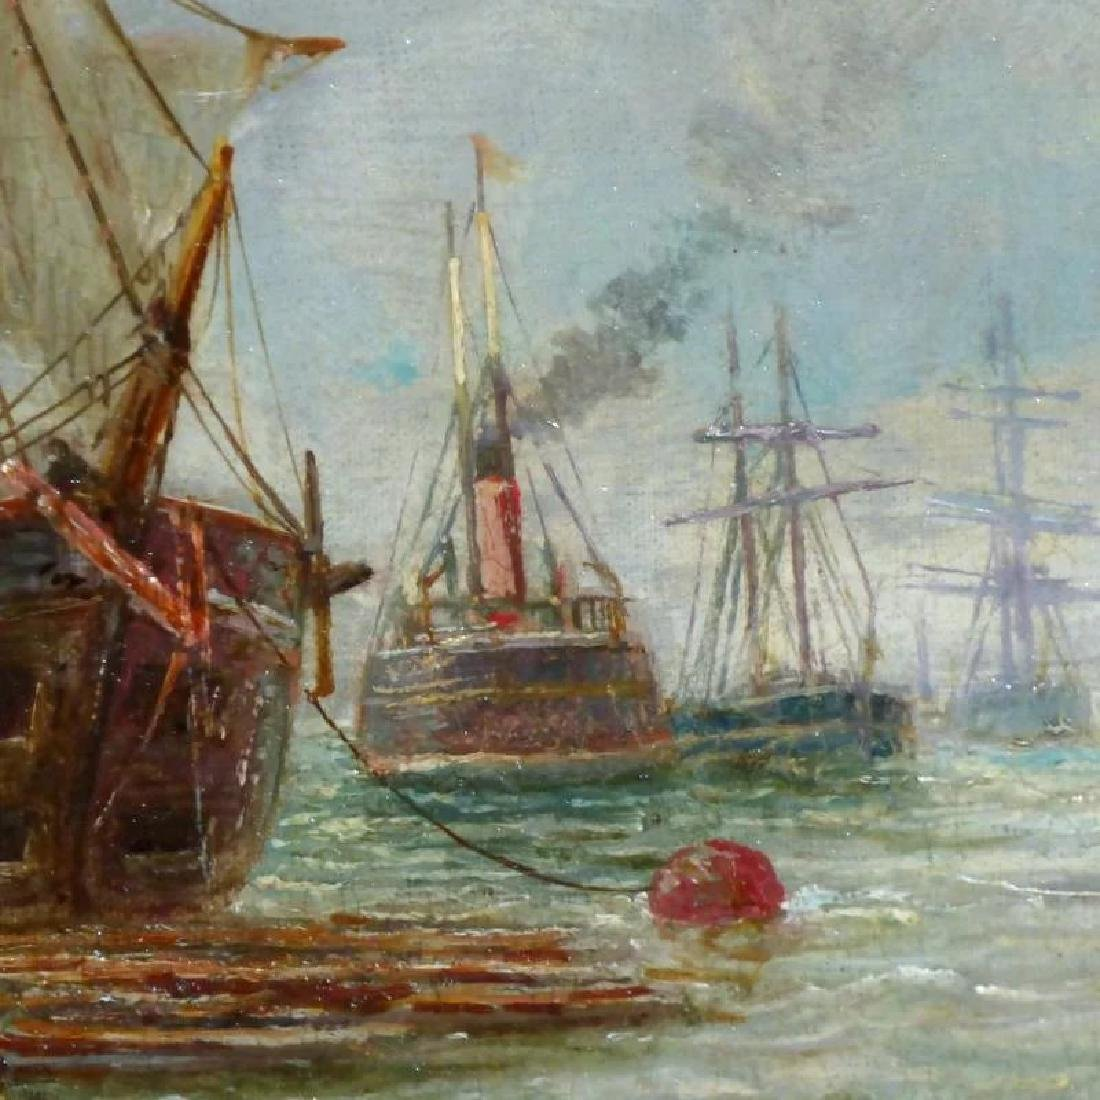 Antique Shipping Scene on the Tyne River, by Bernard B. - 3